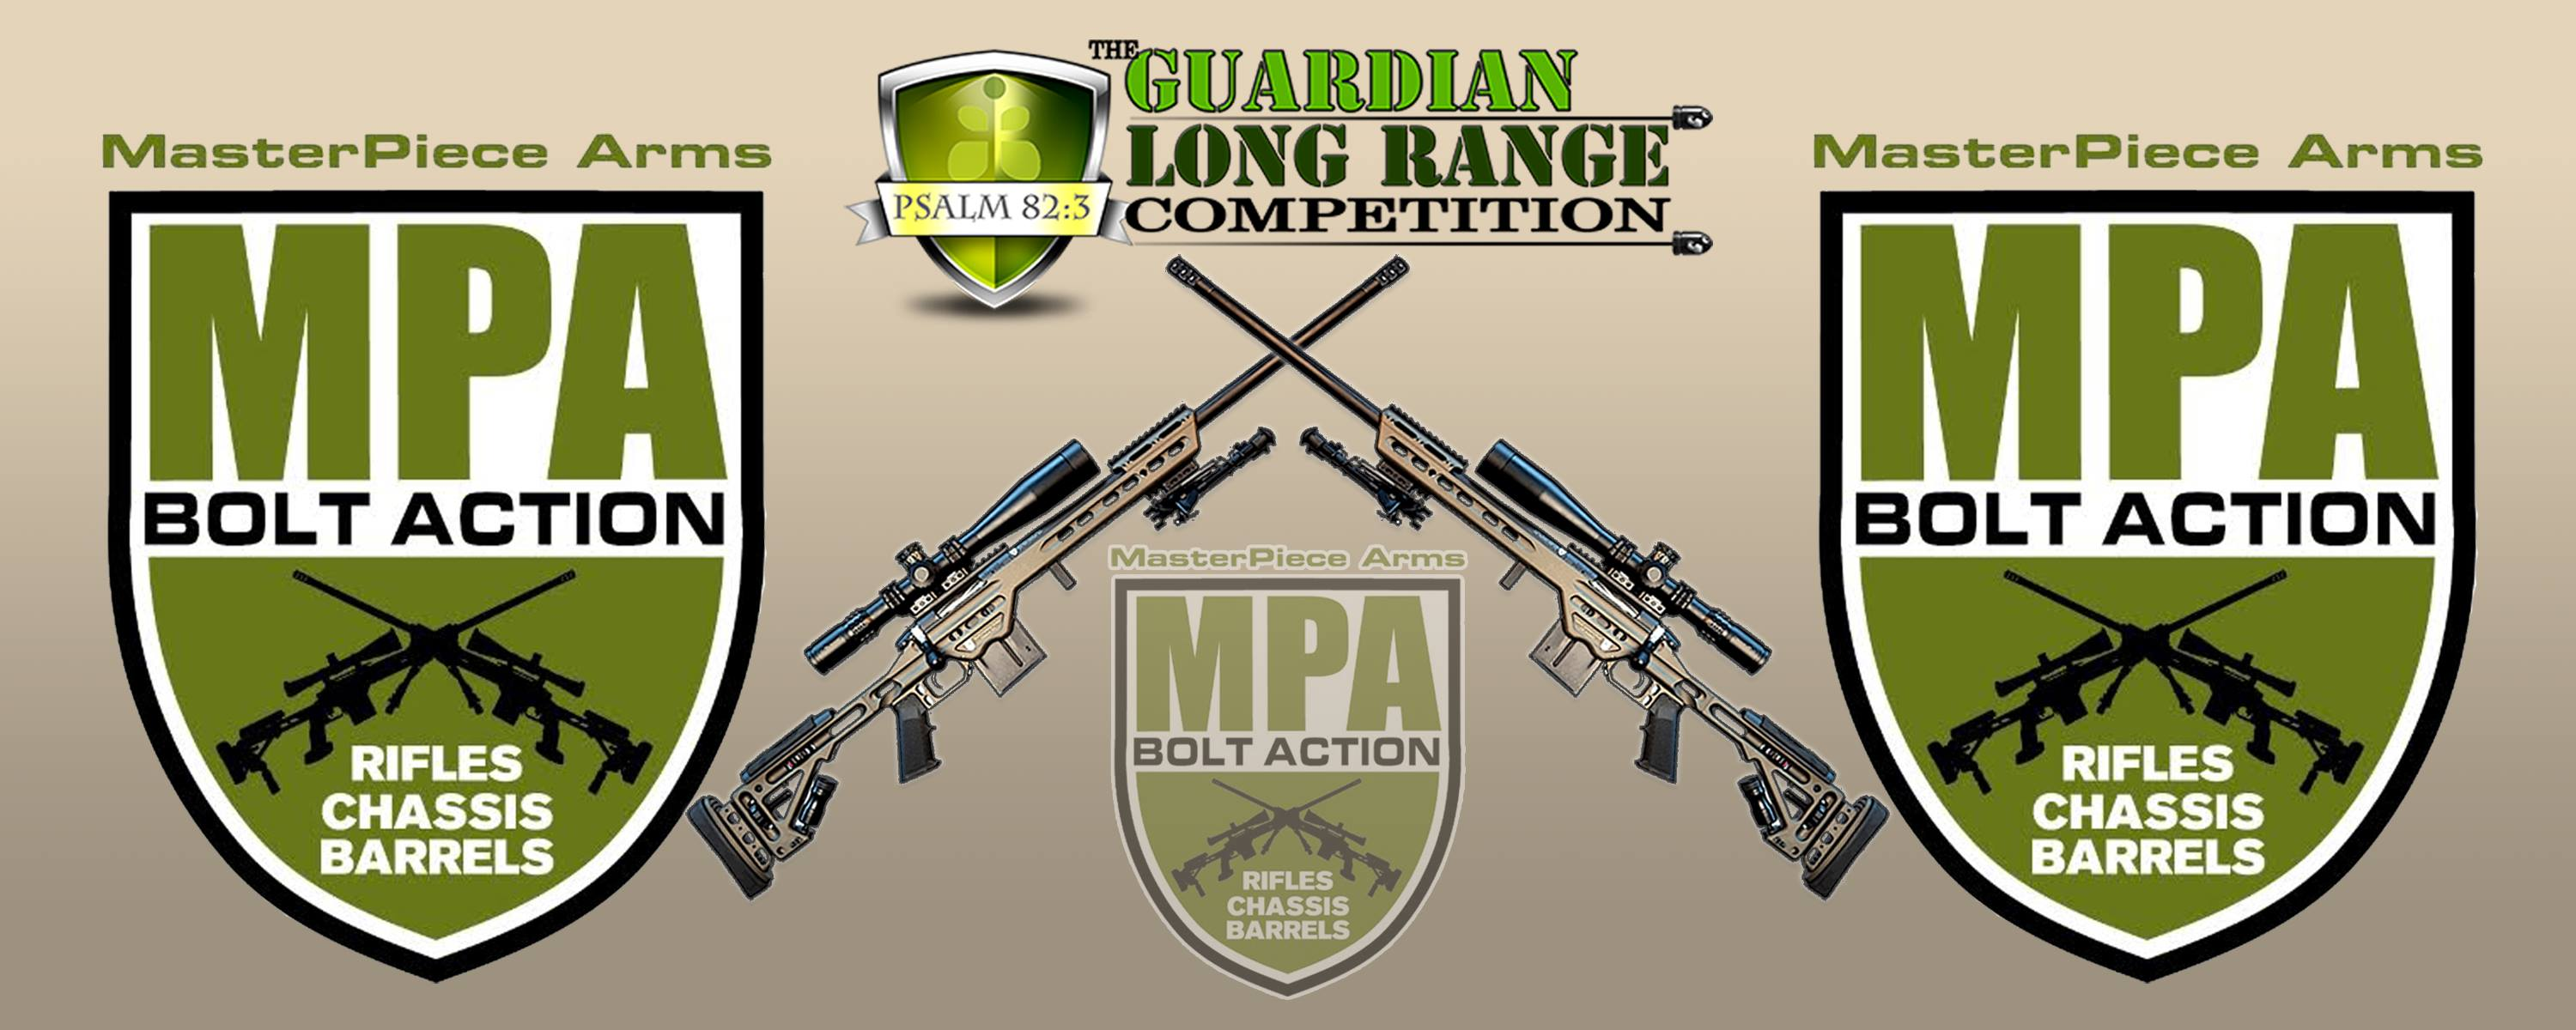 MasterPiece Arms Named 2017 Title Sponsor of The Guardian Long Range Competition